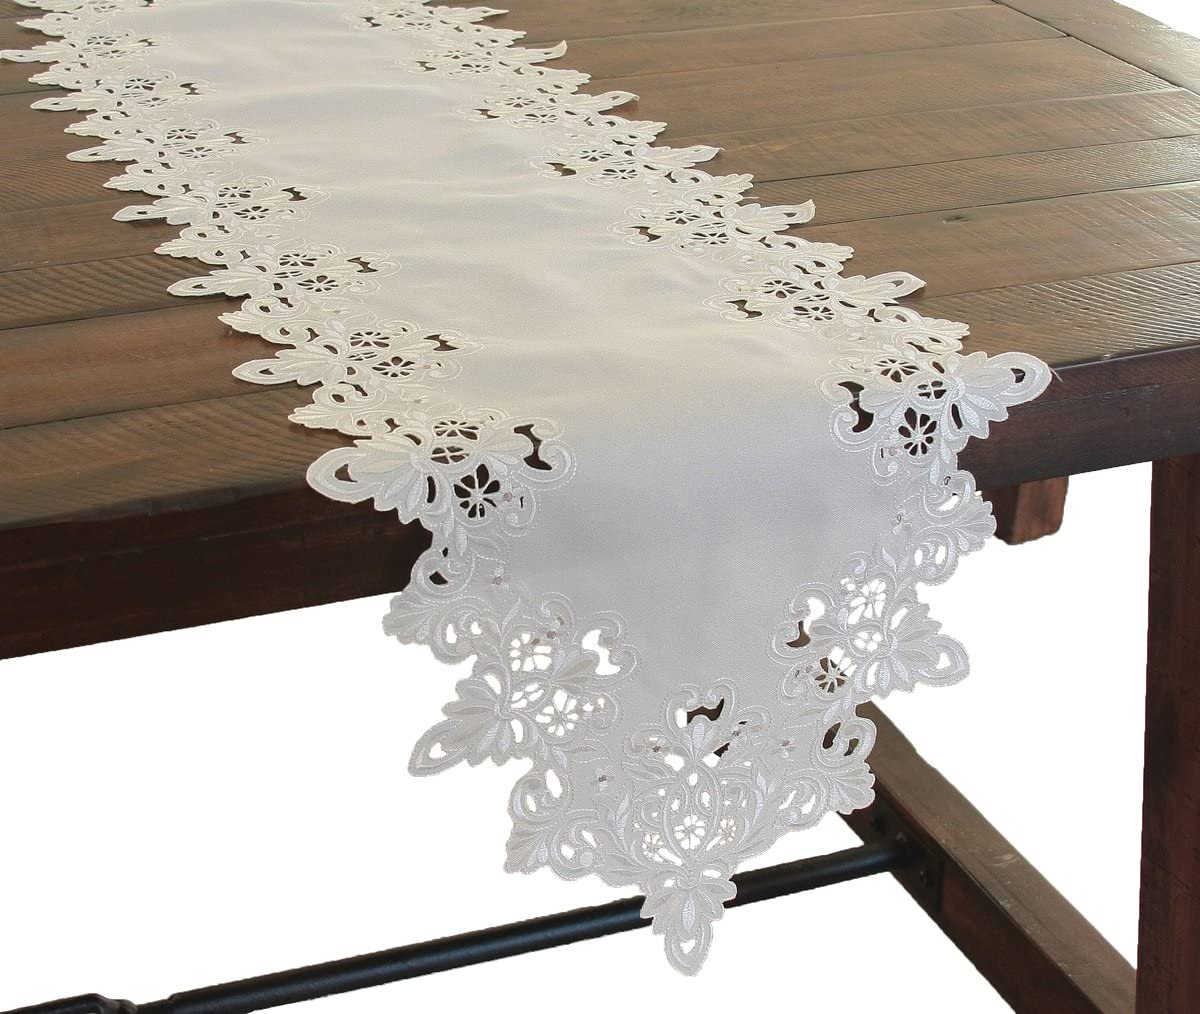 Xia Home Fashions Victorian Lace Embroidered Cutwork Table Runner, 15 by 54-Inch, Taupe